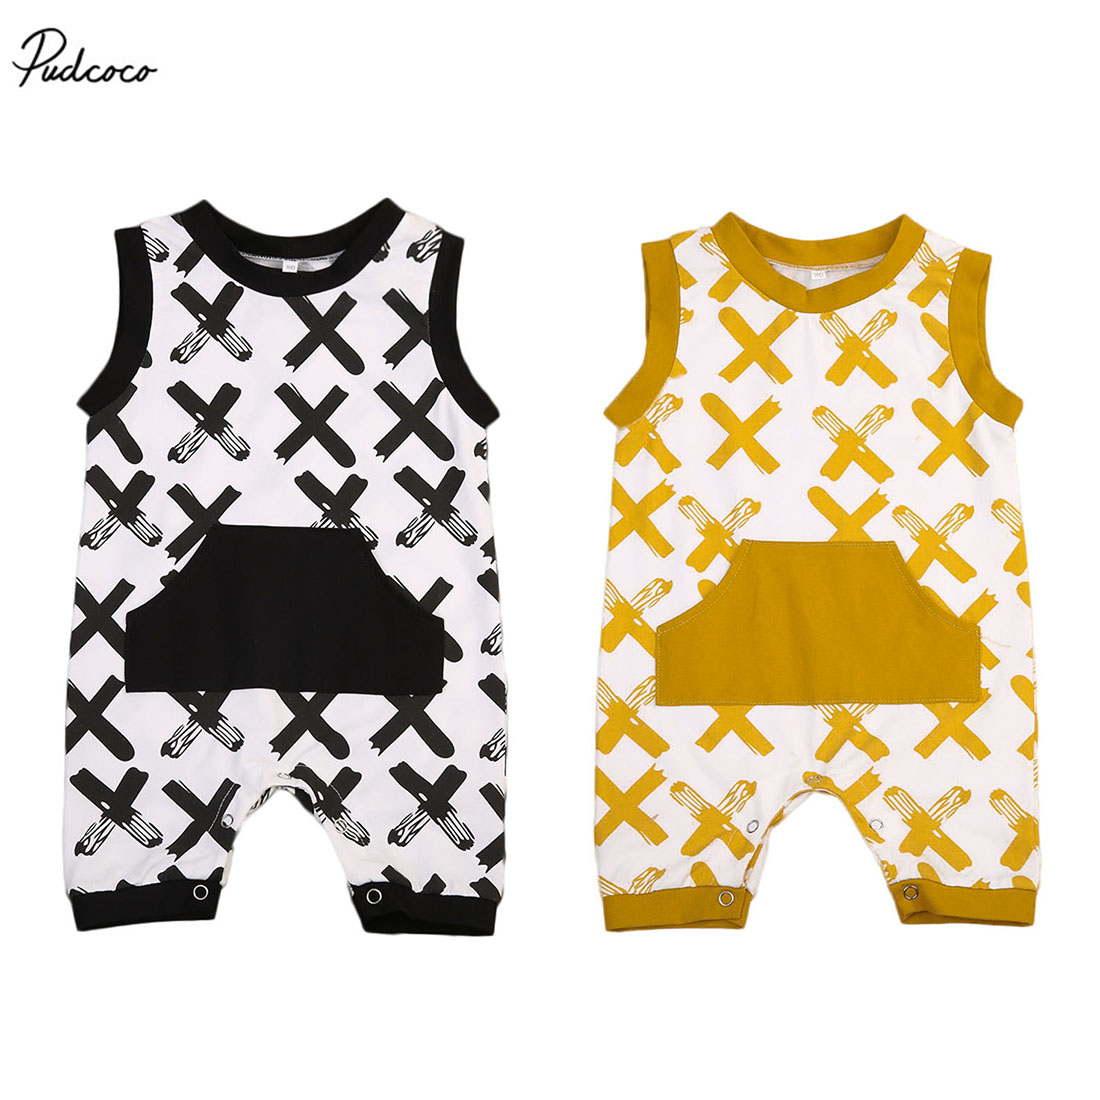 Cute Toddler Baby Boys Girls Summer X Print Romper Sleeveless Large Pocket Jumpsuit Playsuit Outfits Clothes 0-18M